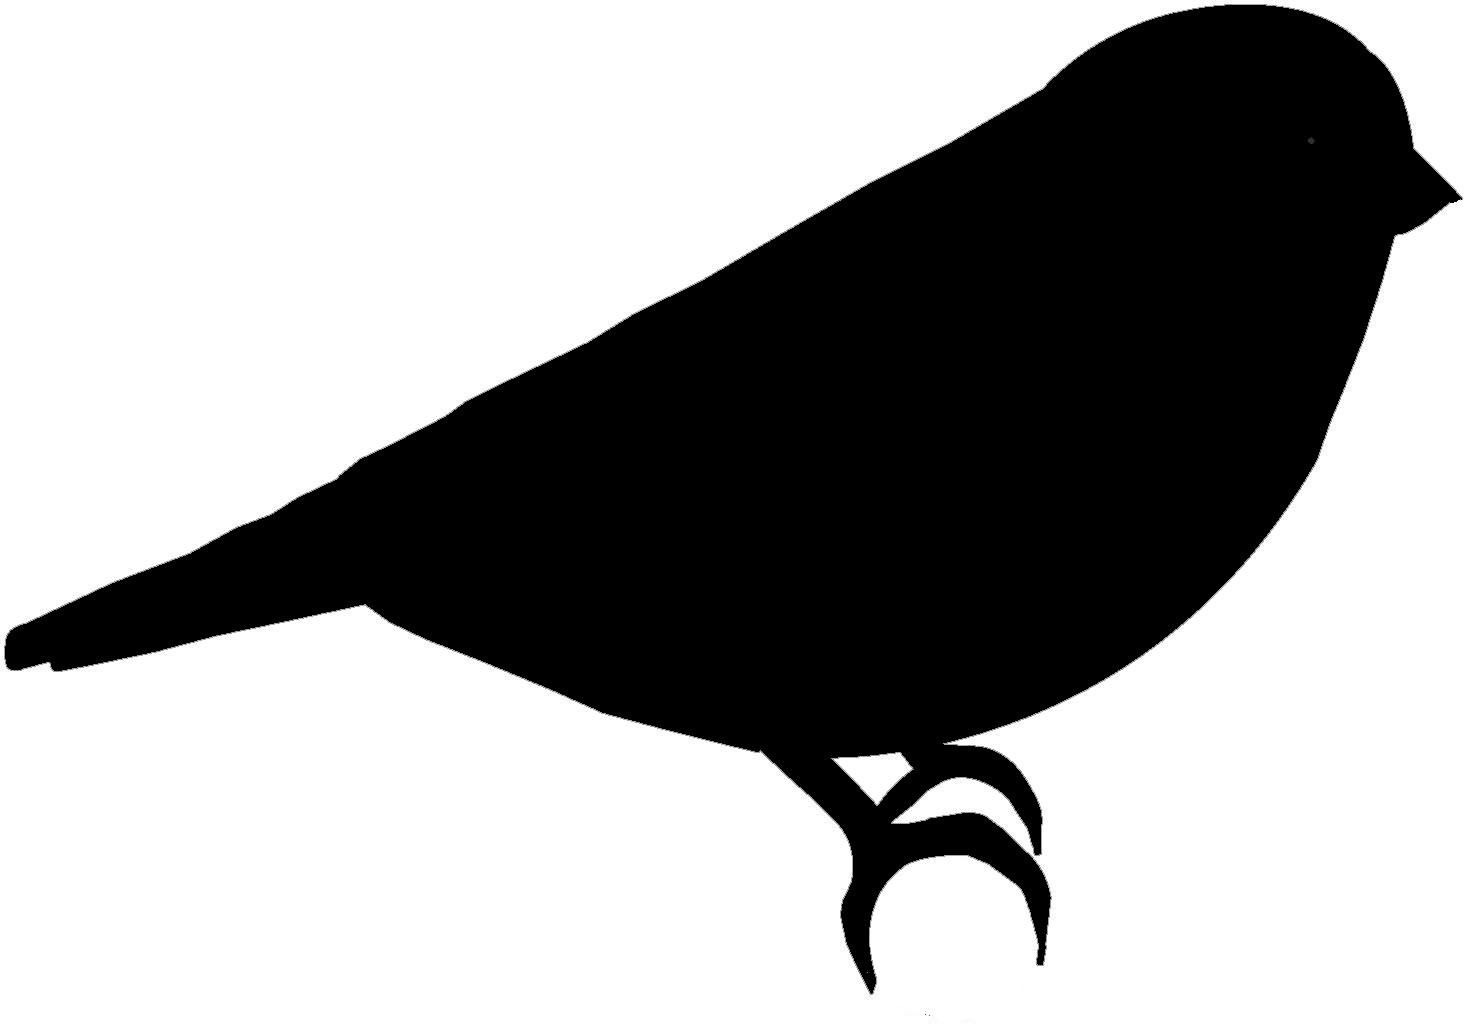 Bird silhouette images at. Birds clipart basic